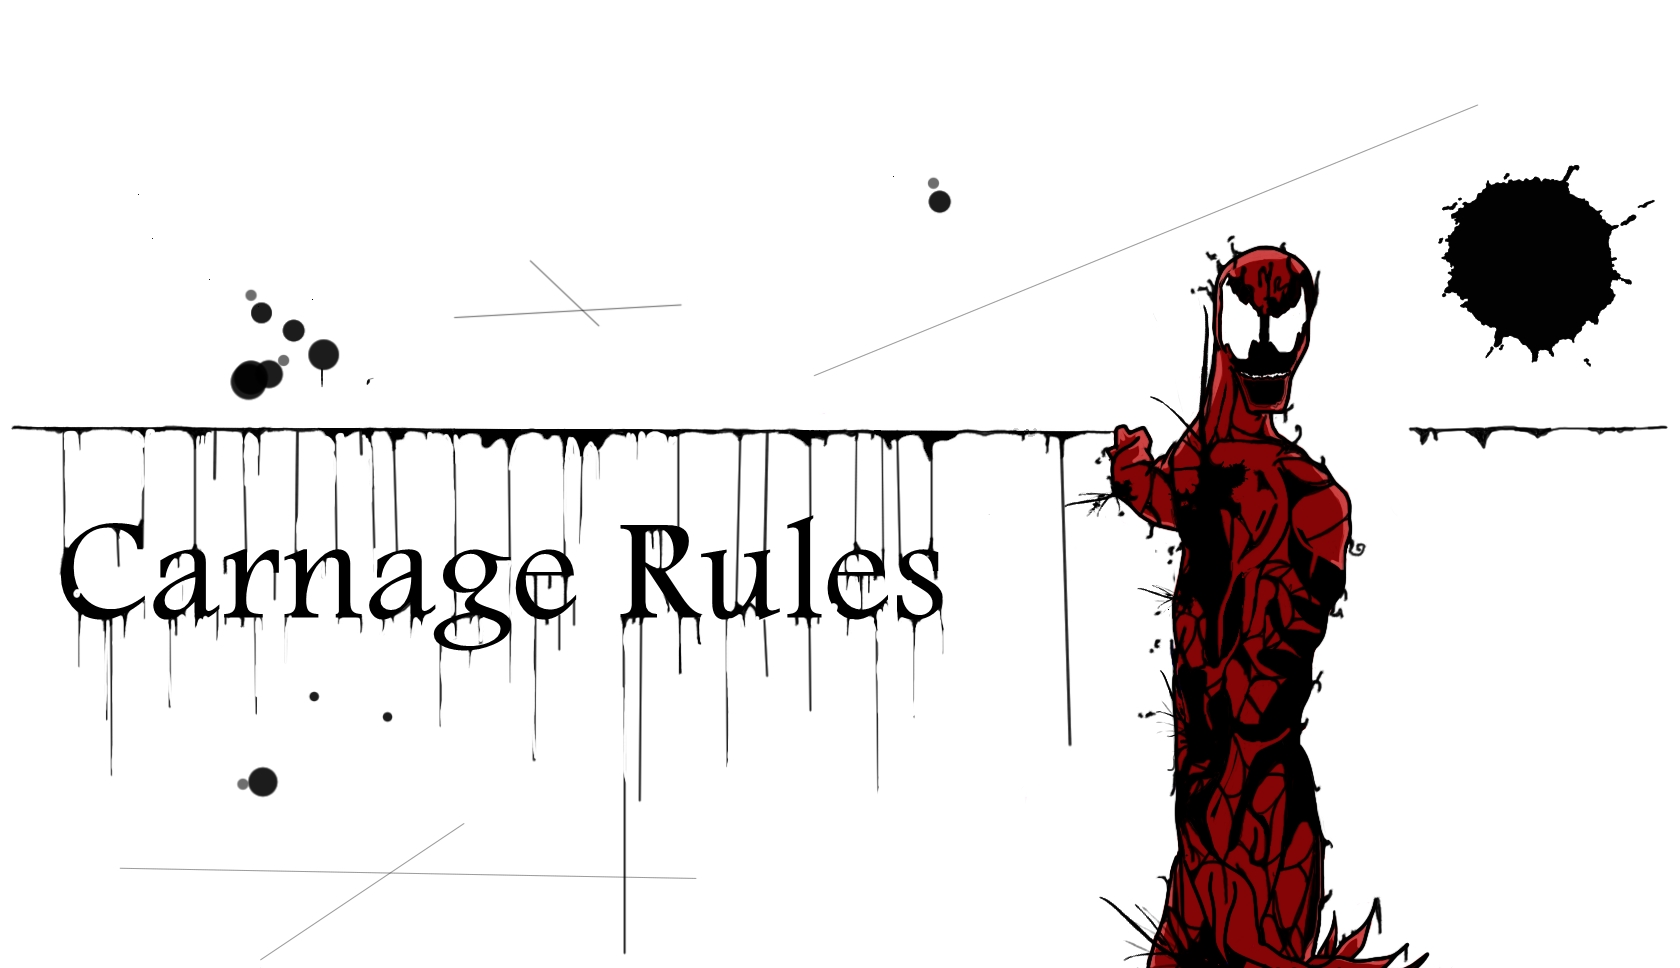 Carnage Rules by marvelnerd87